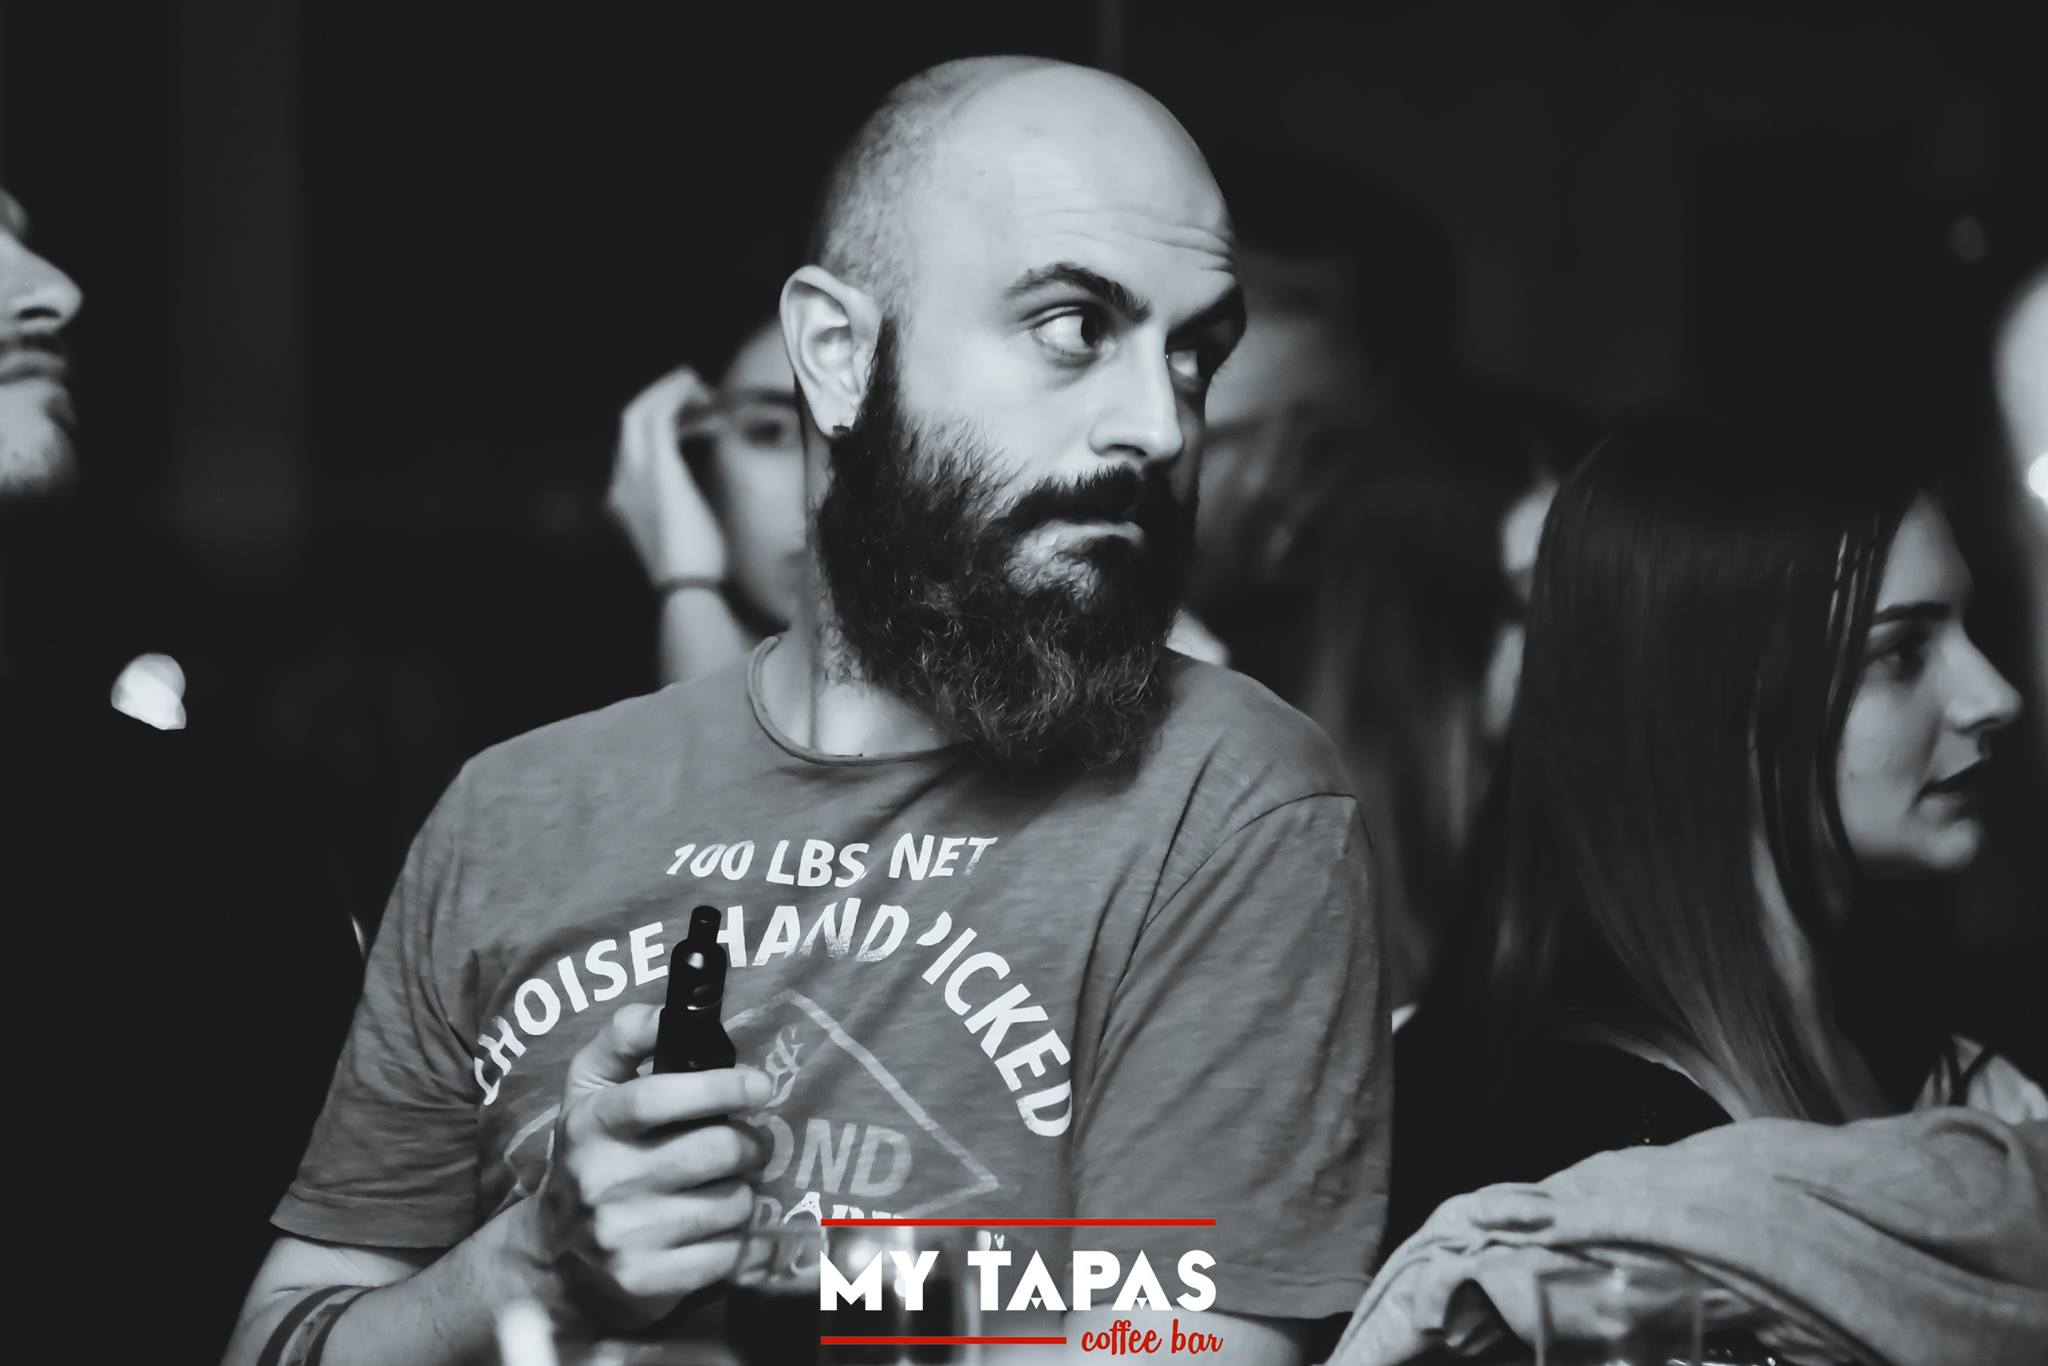 34. 22528983 1576370392383168 3480536598010398825 o 1 - My Live Tuesdays στο MY Tapas Coffee bar | Τρίτη 17.10 Part 1/2